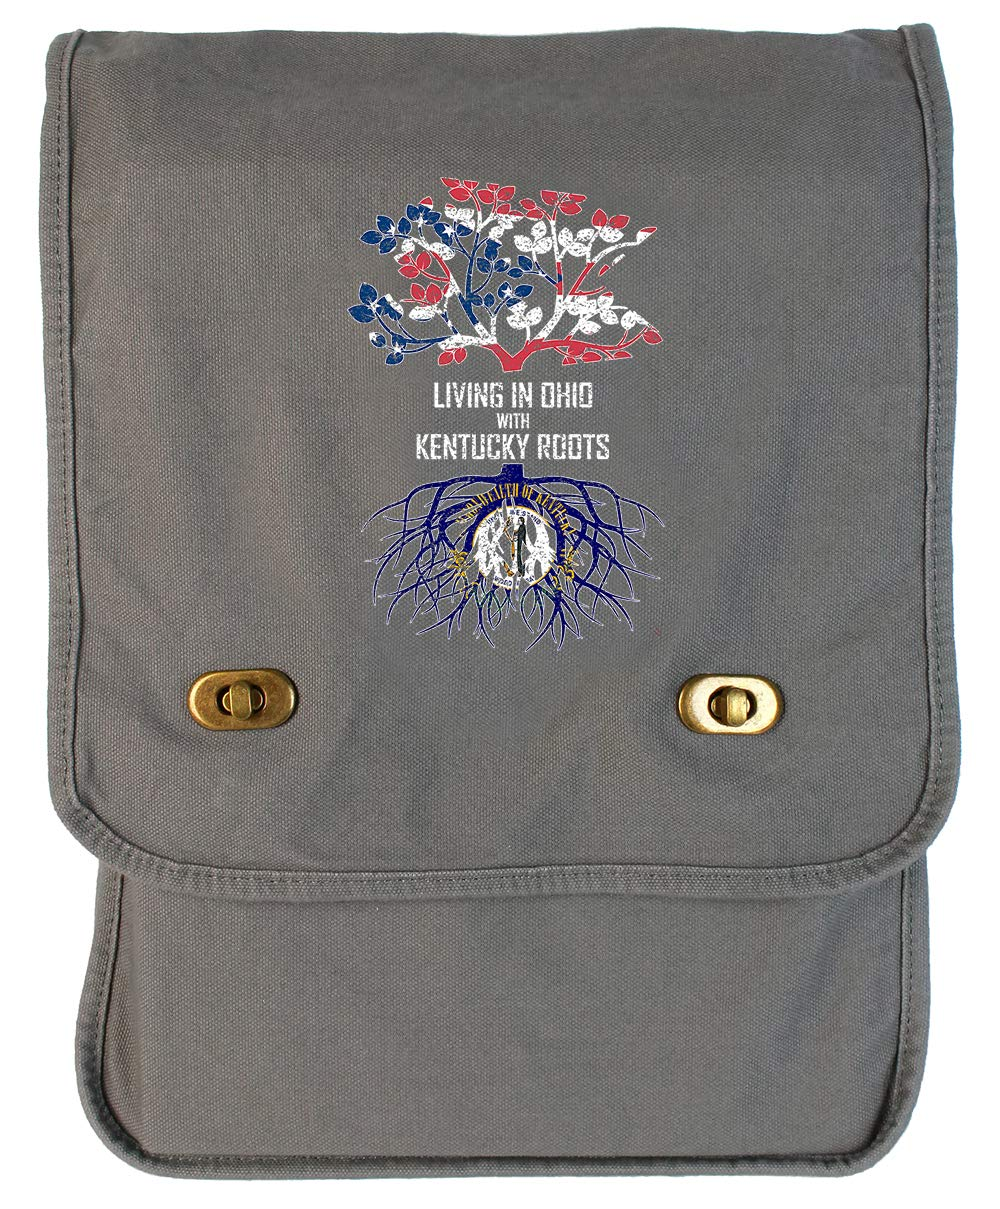 Tenacitee Living In Ohio with Kentucky Roots Grey Brushed Canvas Messenger Bag